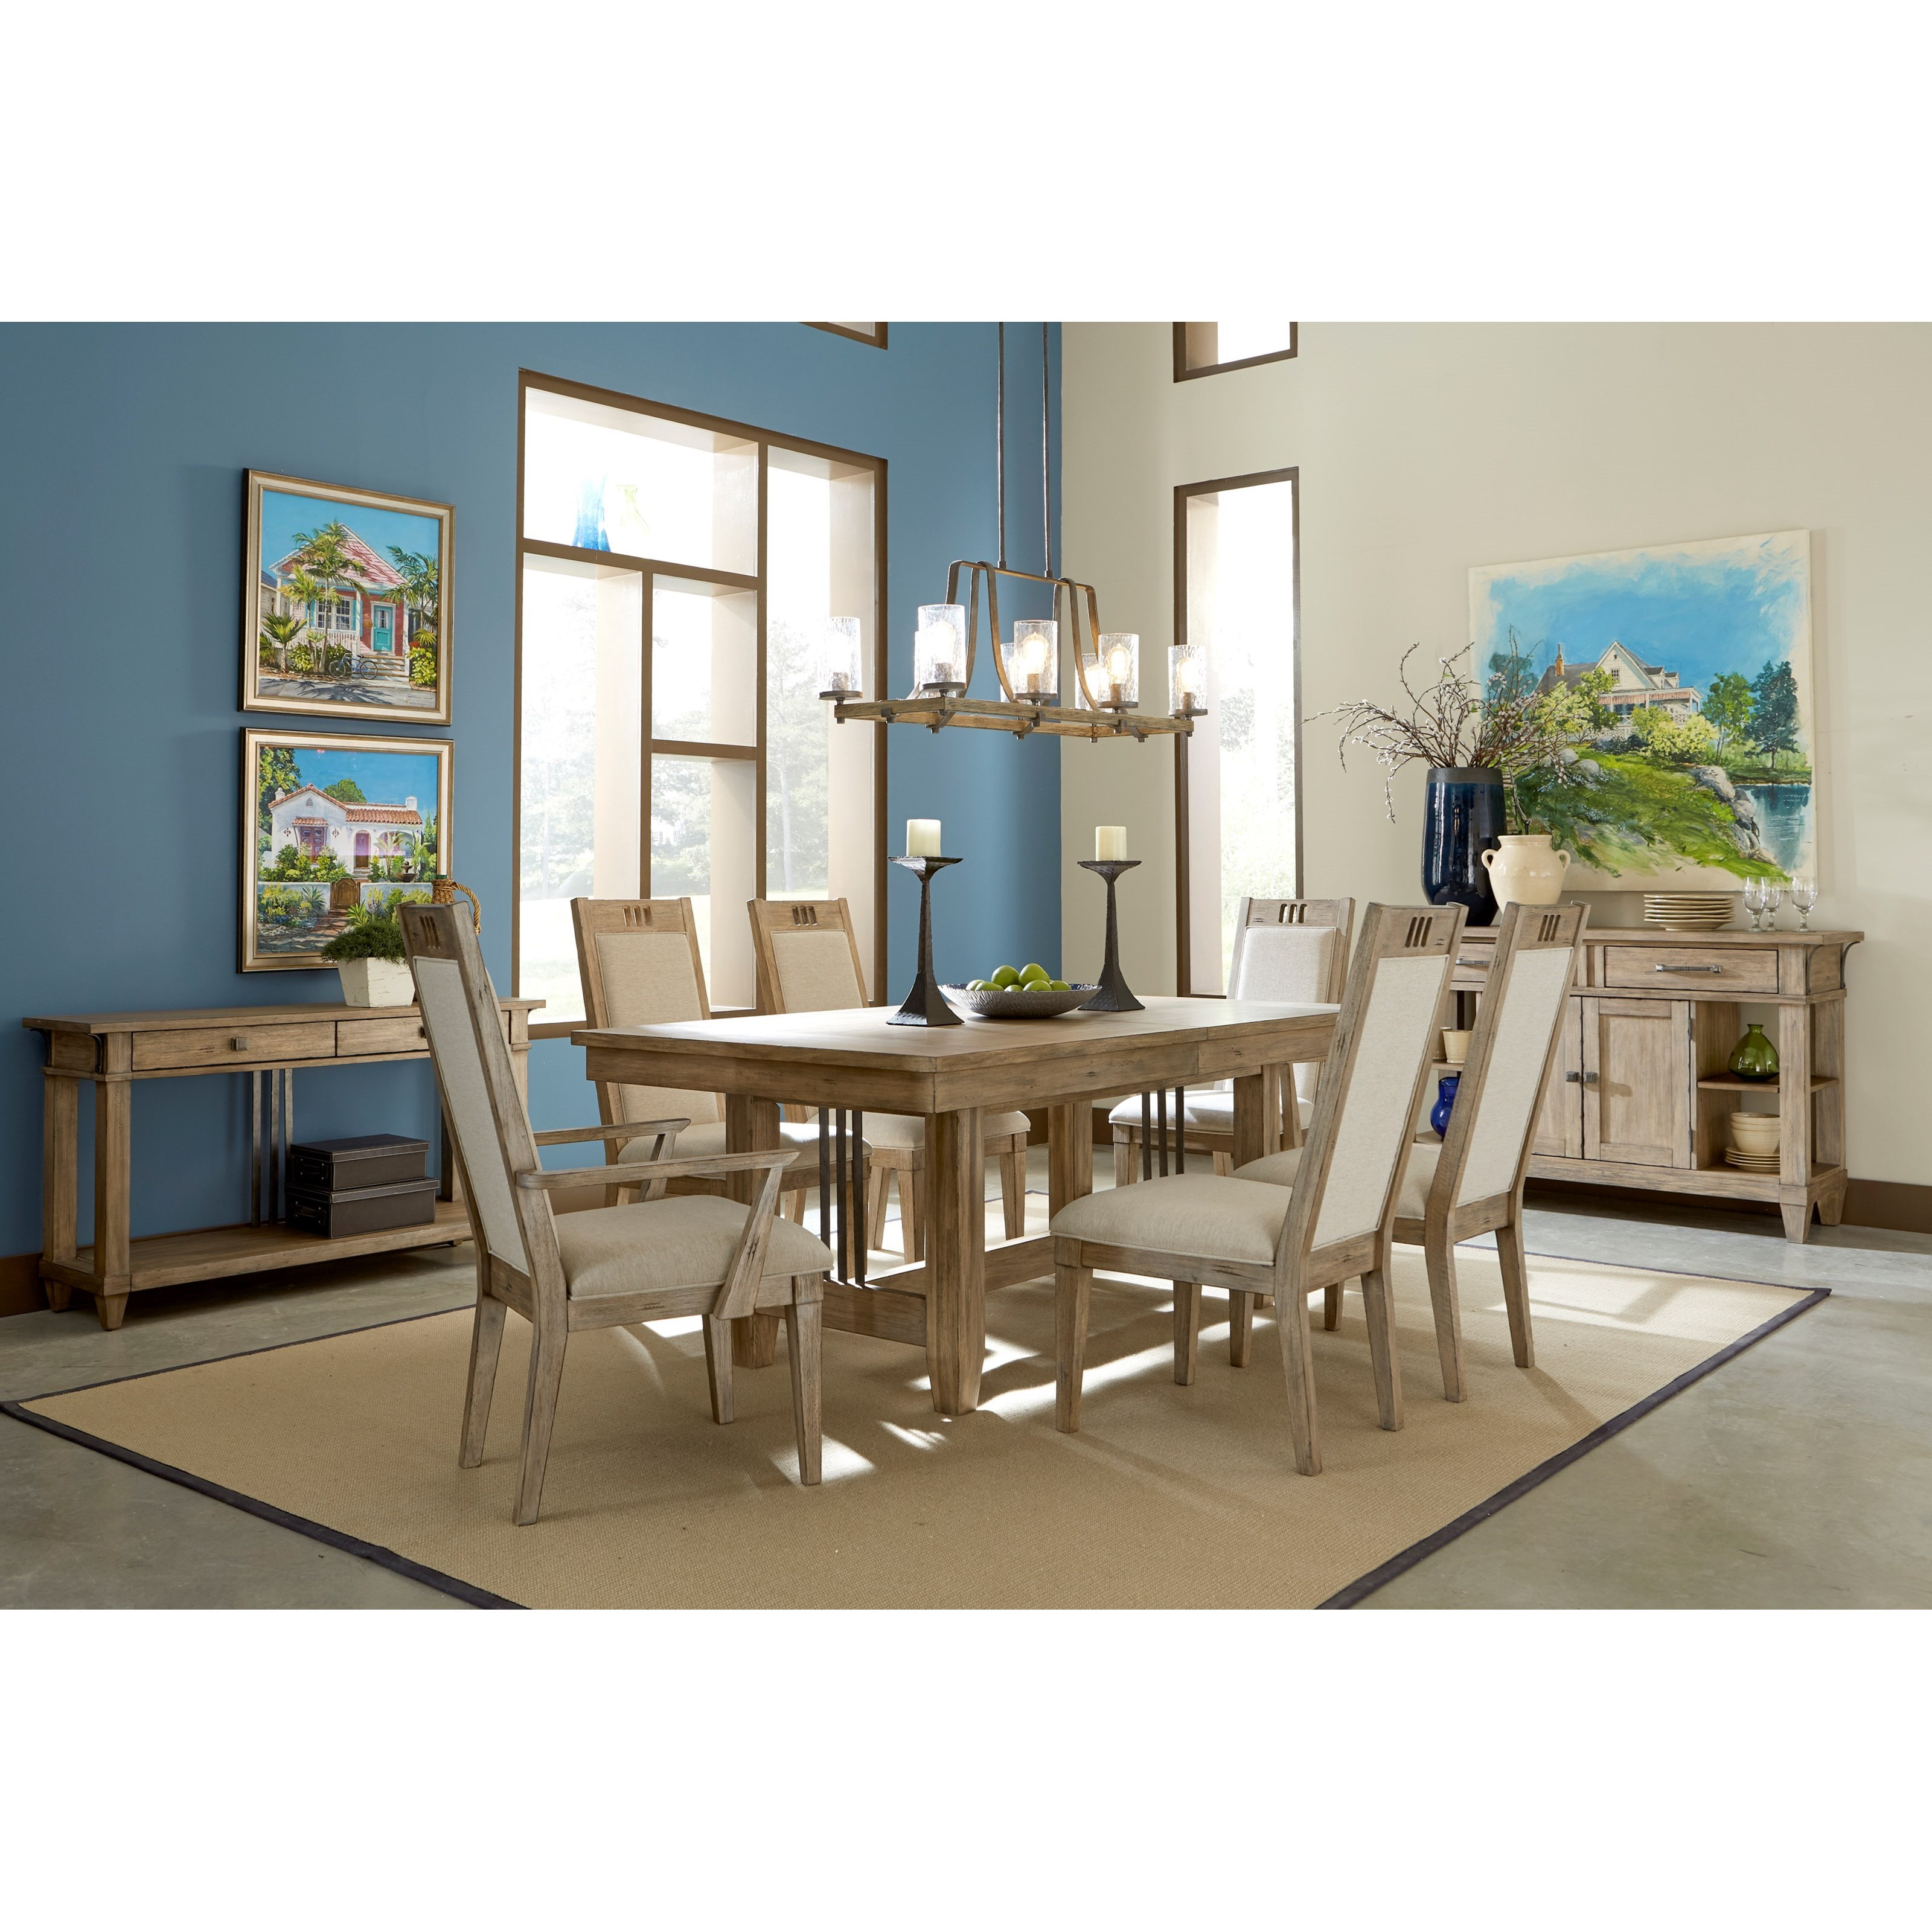 Dining Room Furniture Michigan: Carolina Preserves By Klaussner Reflections Relaxed